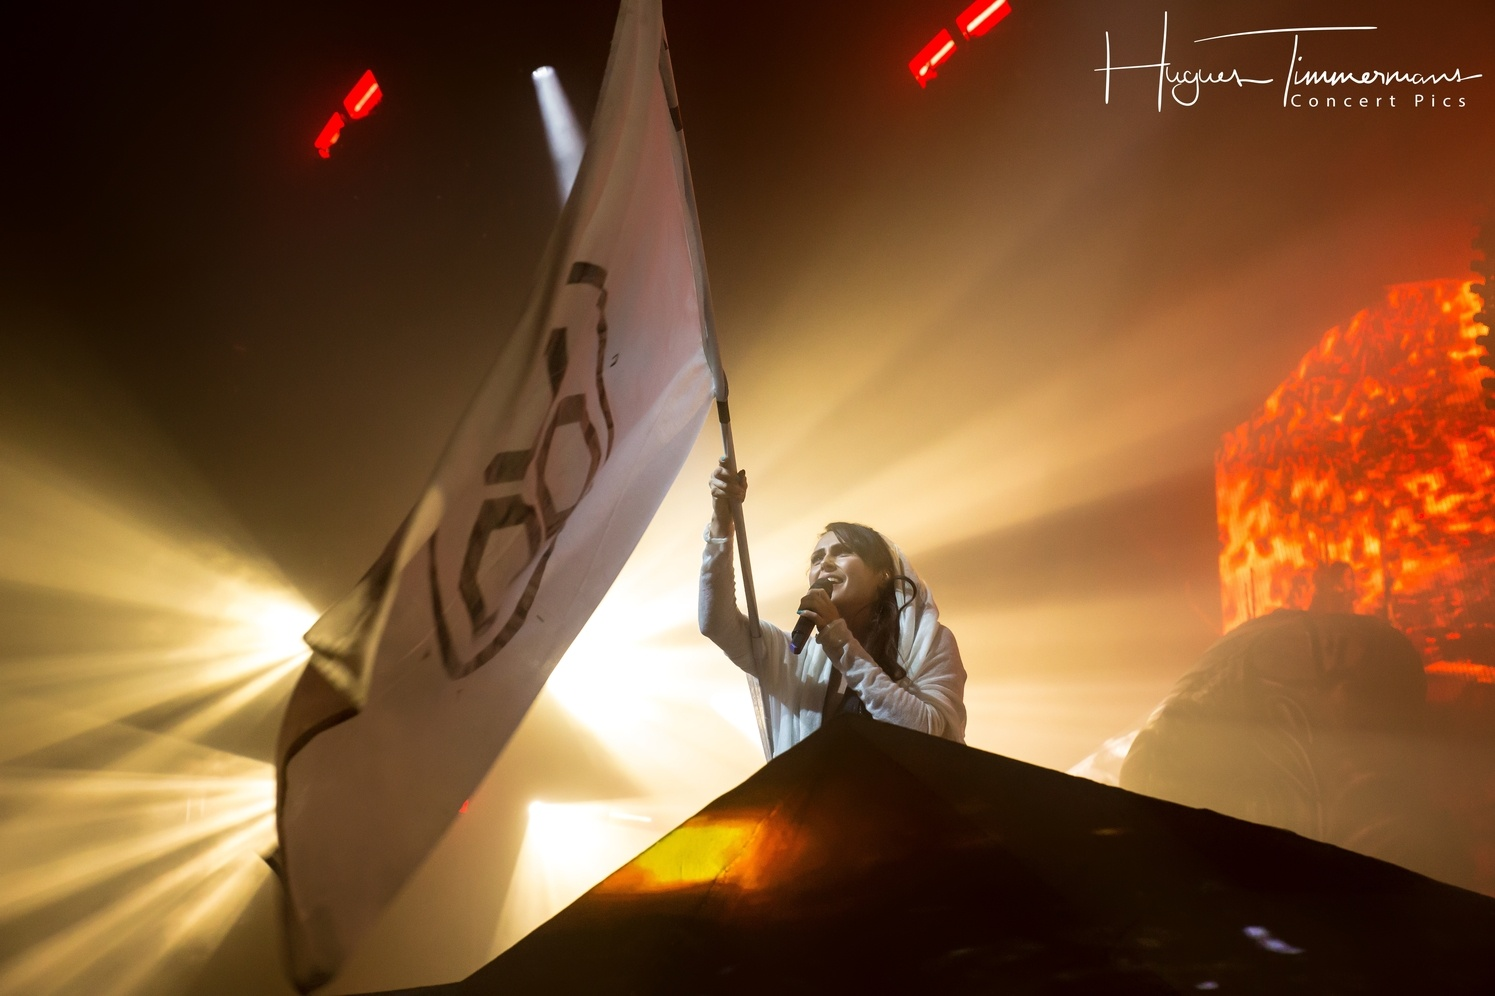 Towards The End Within Temptation Photo Galleries